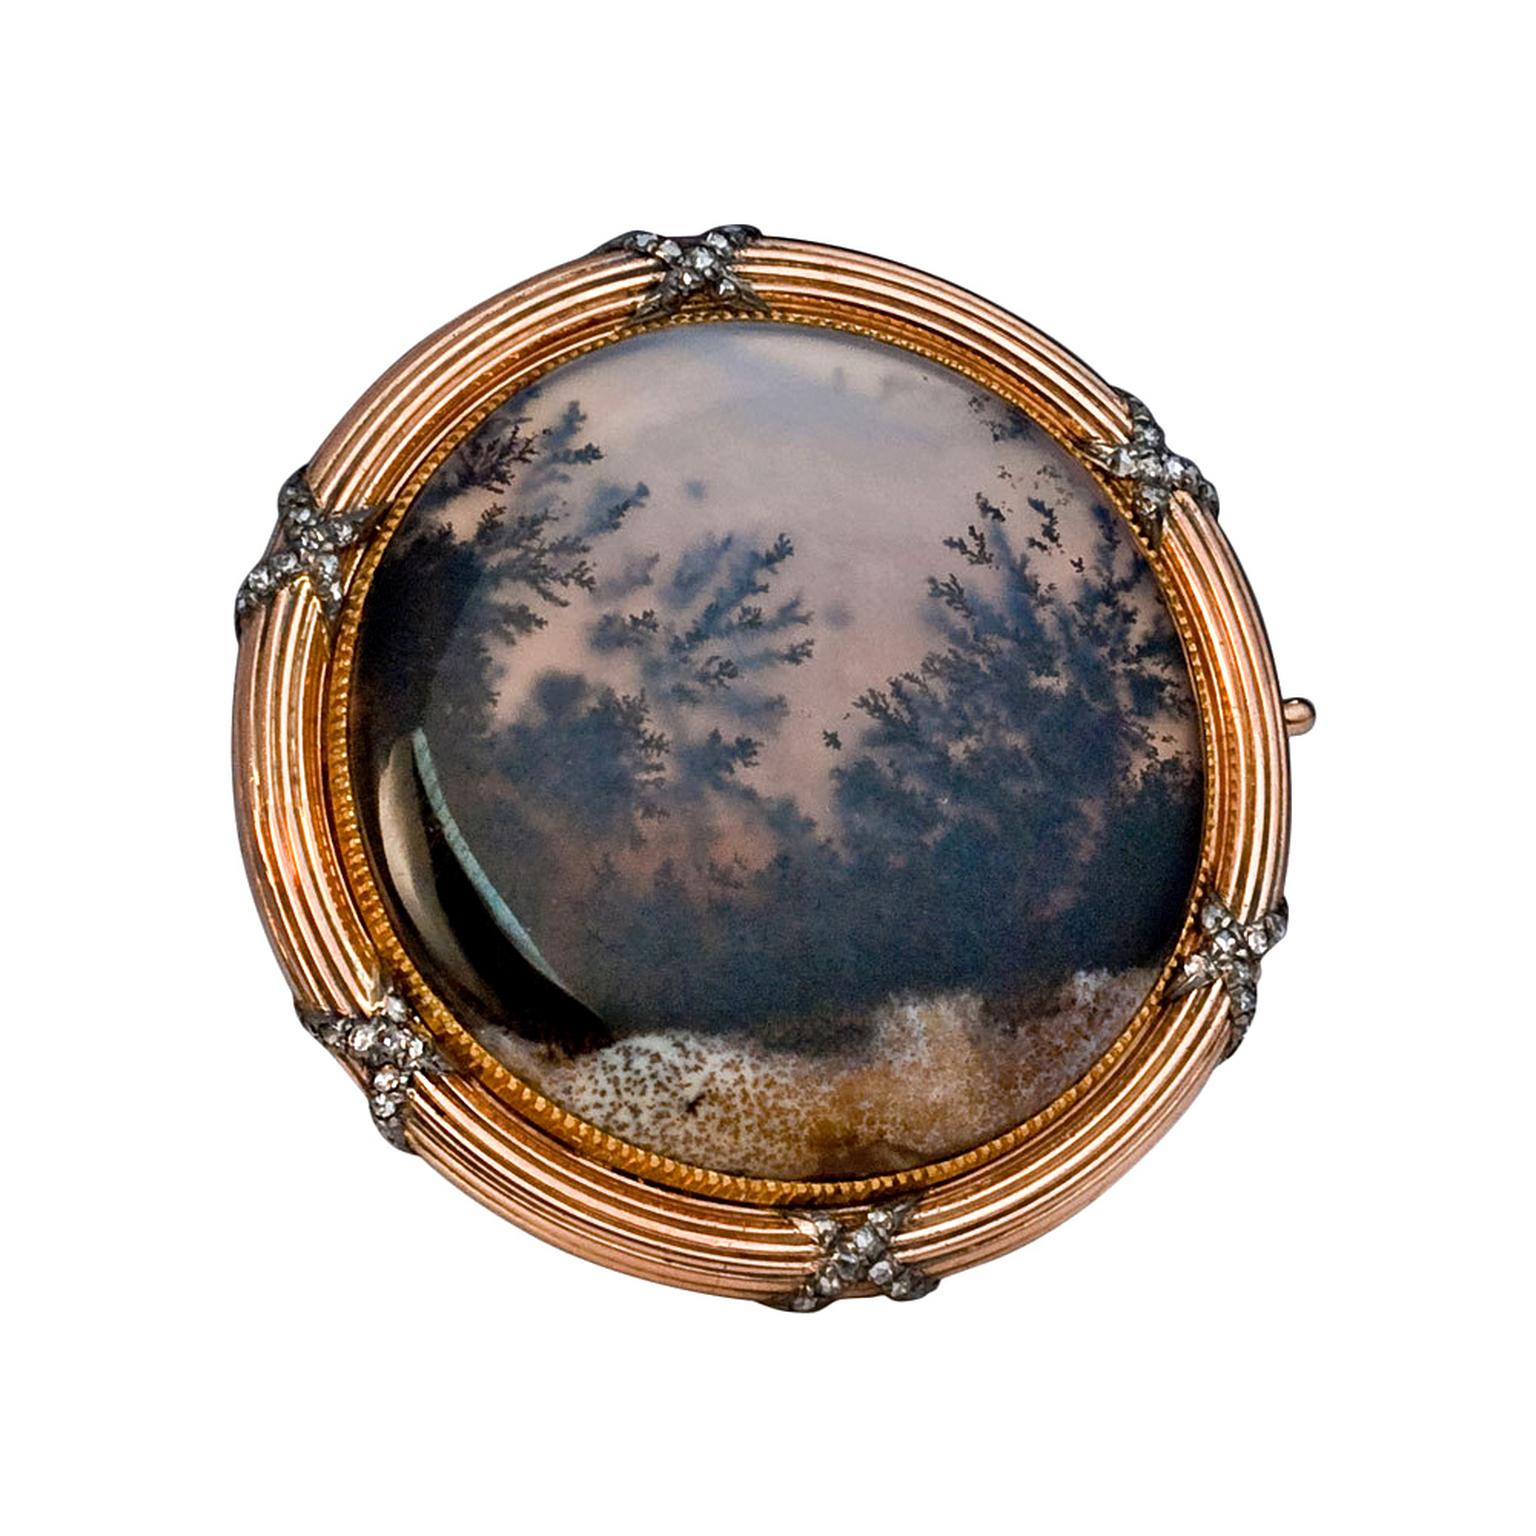 Romanov Russia moss agate brooch by Faberge